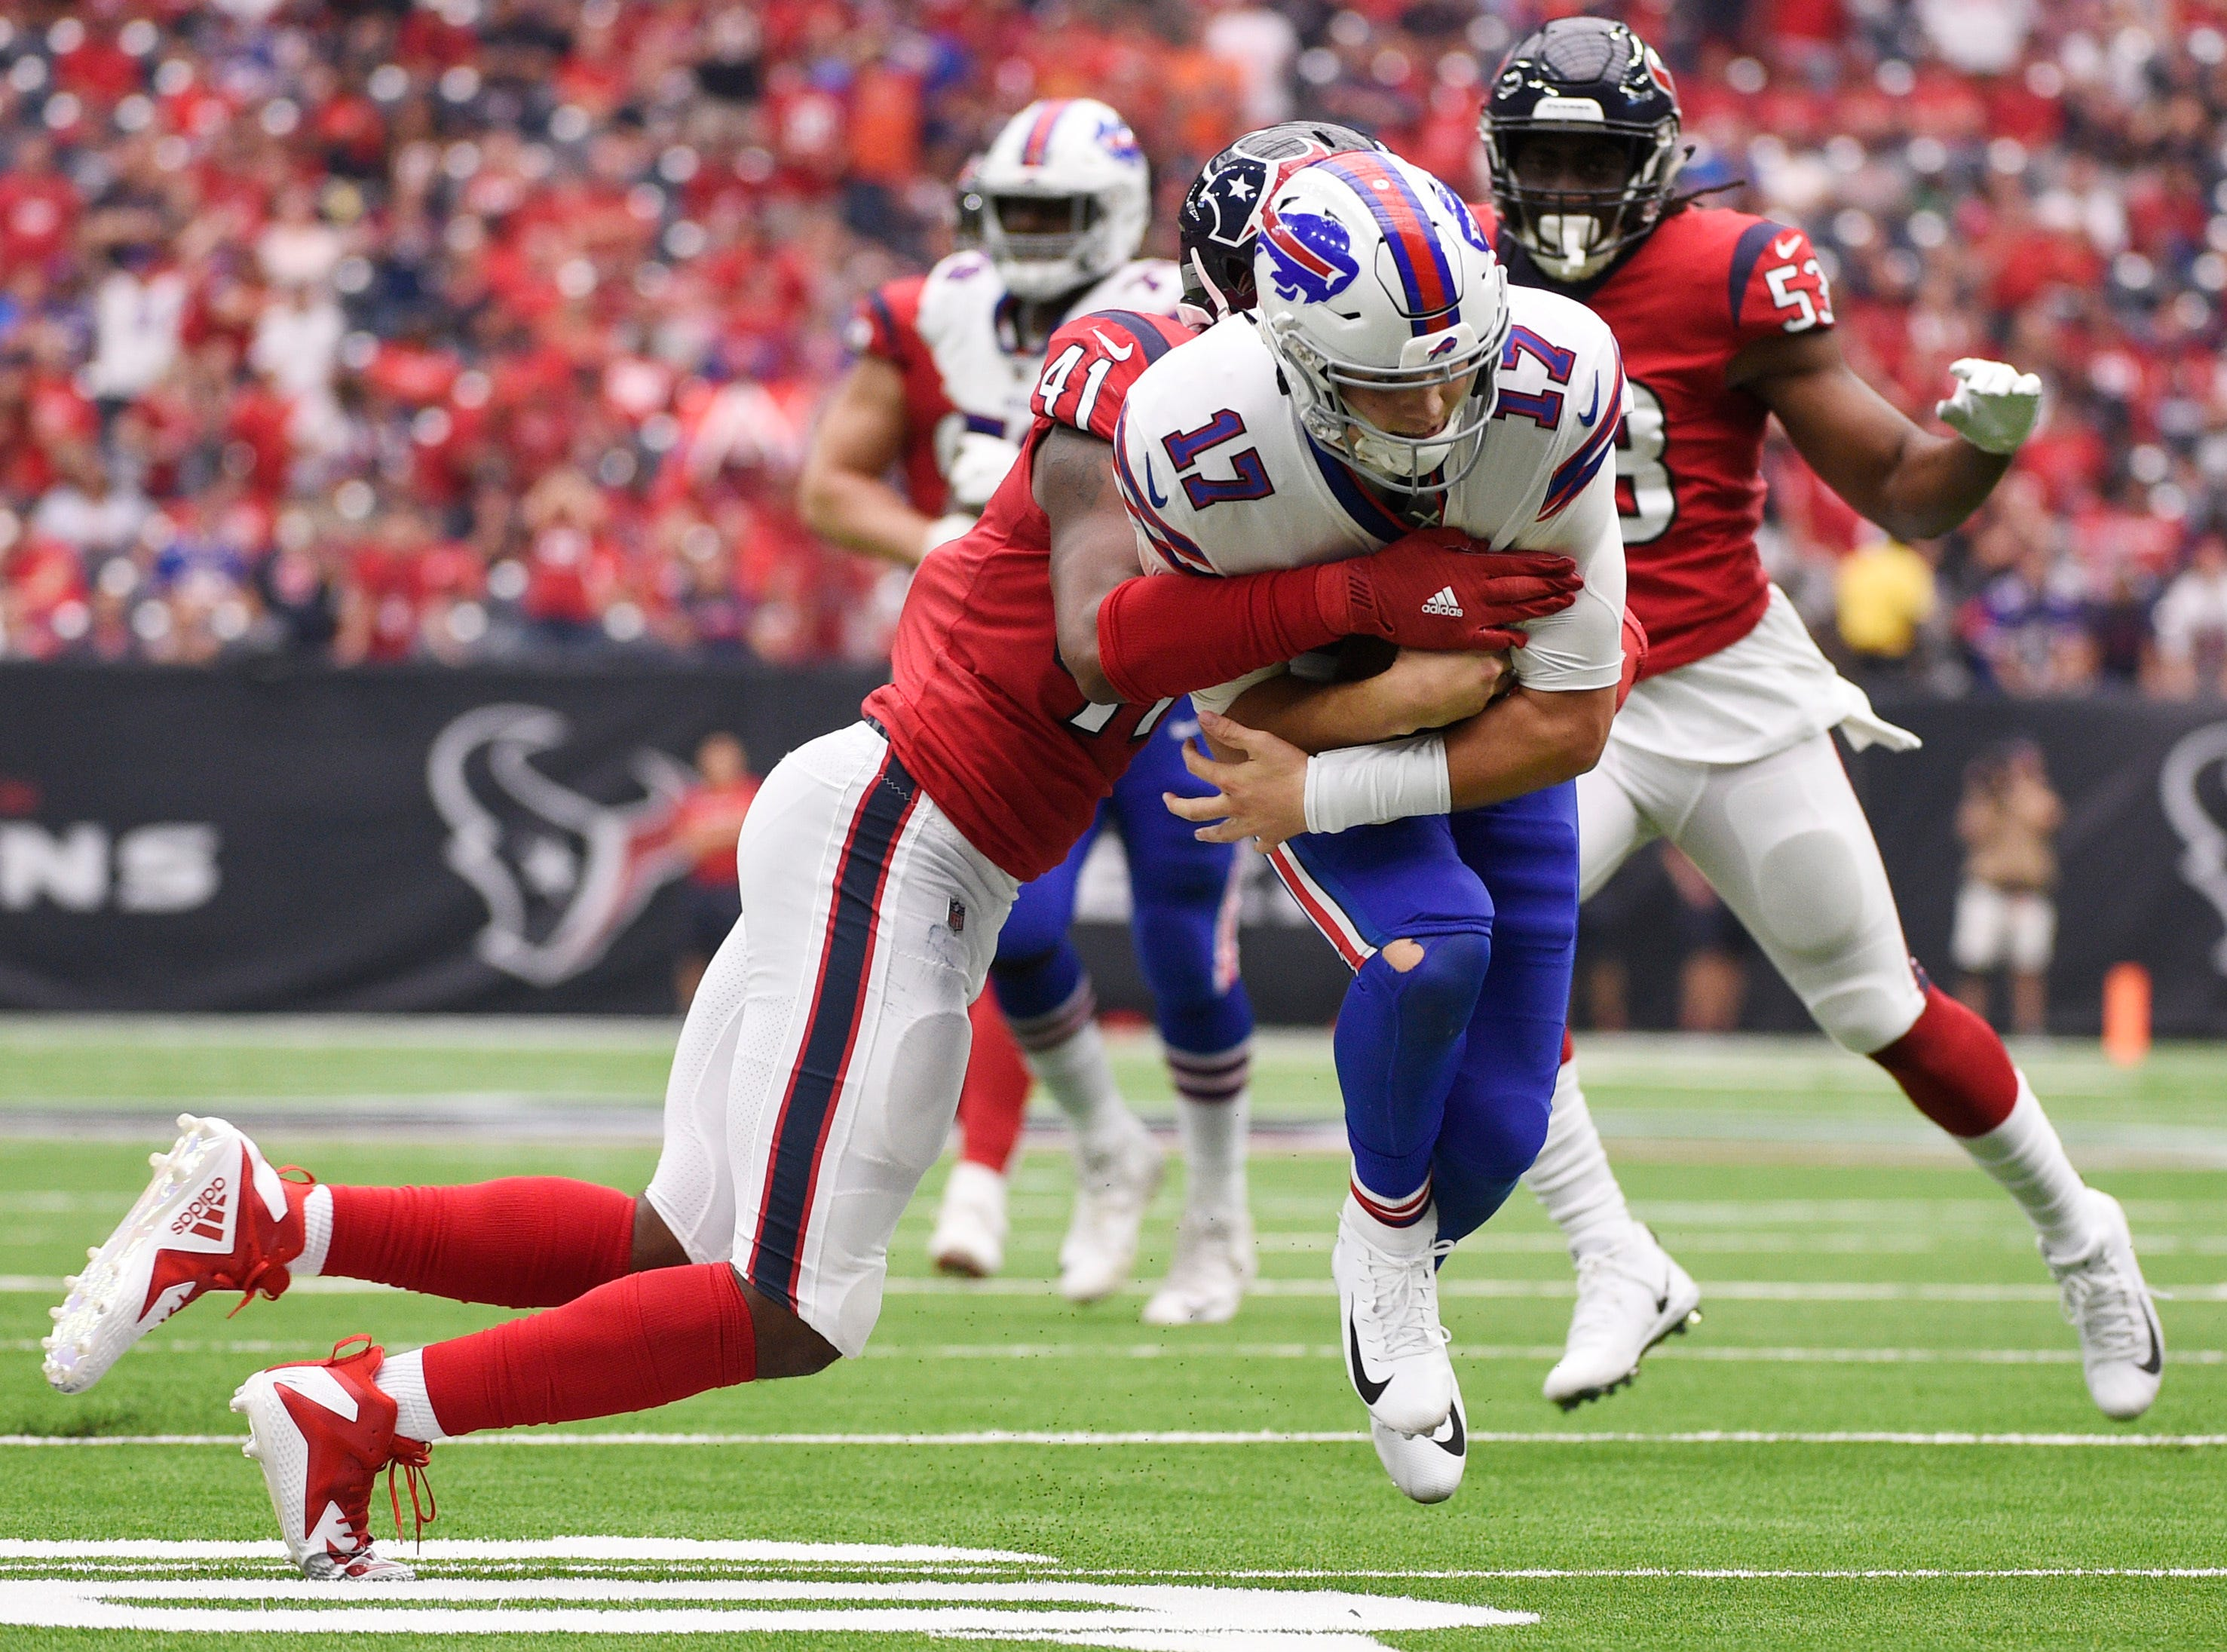 Buffalo Bills quarterback Josh Allen (17) is hit by Houston Texans linebacker Zach Cunningham (41) during the second half of an NFL football game, Sunday, Oct. 14, 2018, in Houston. (AP Photo/Eric Christian Smith)